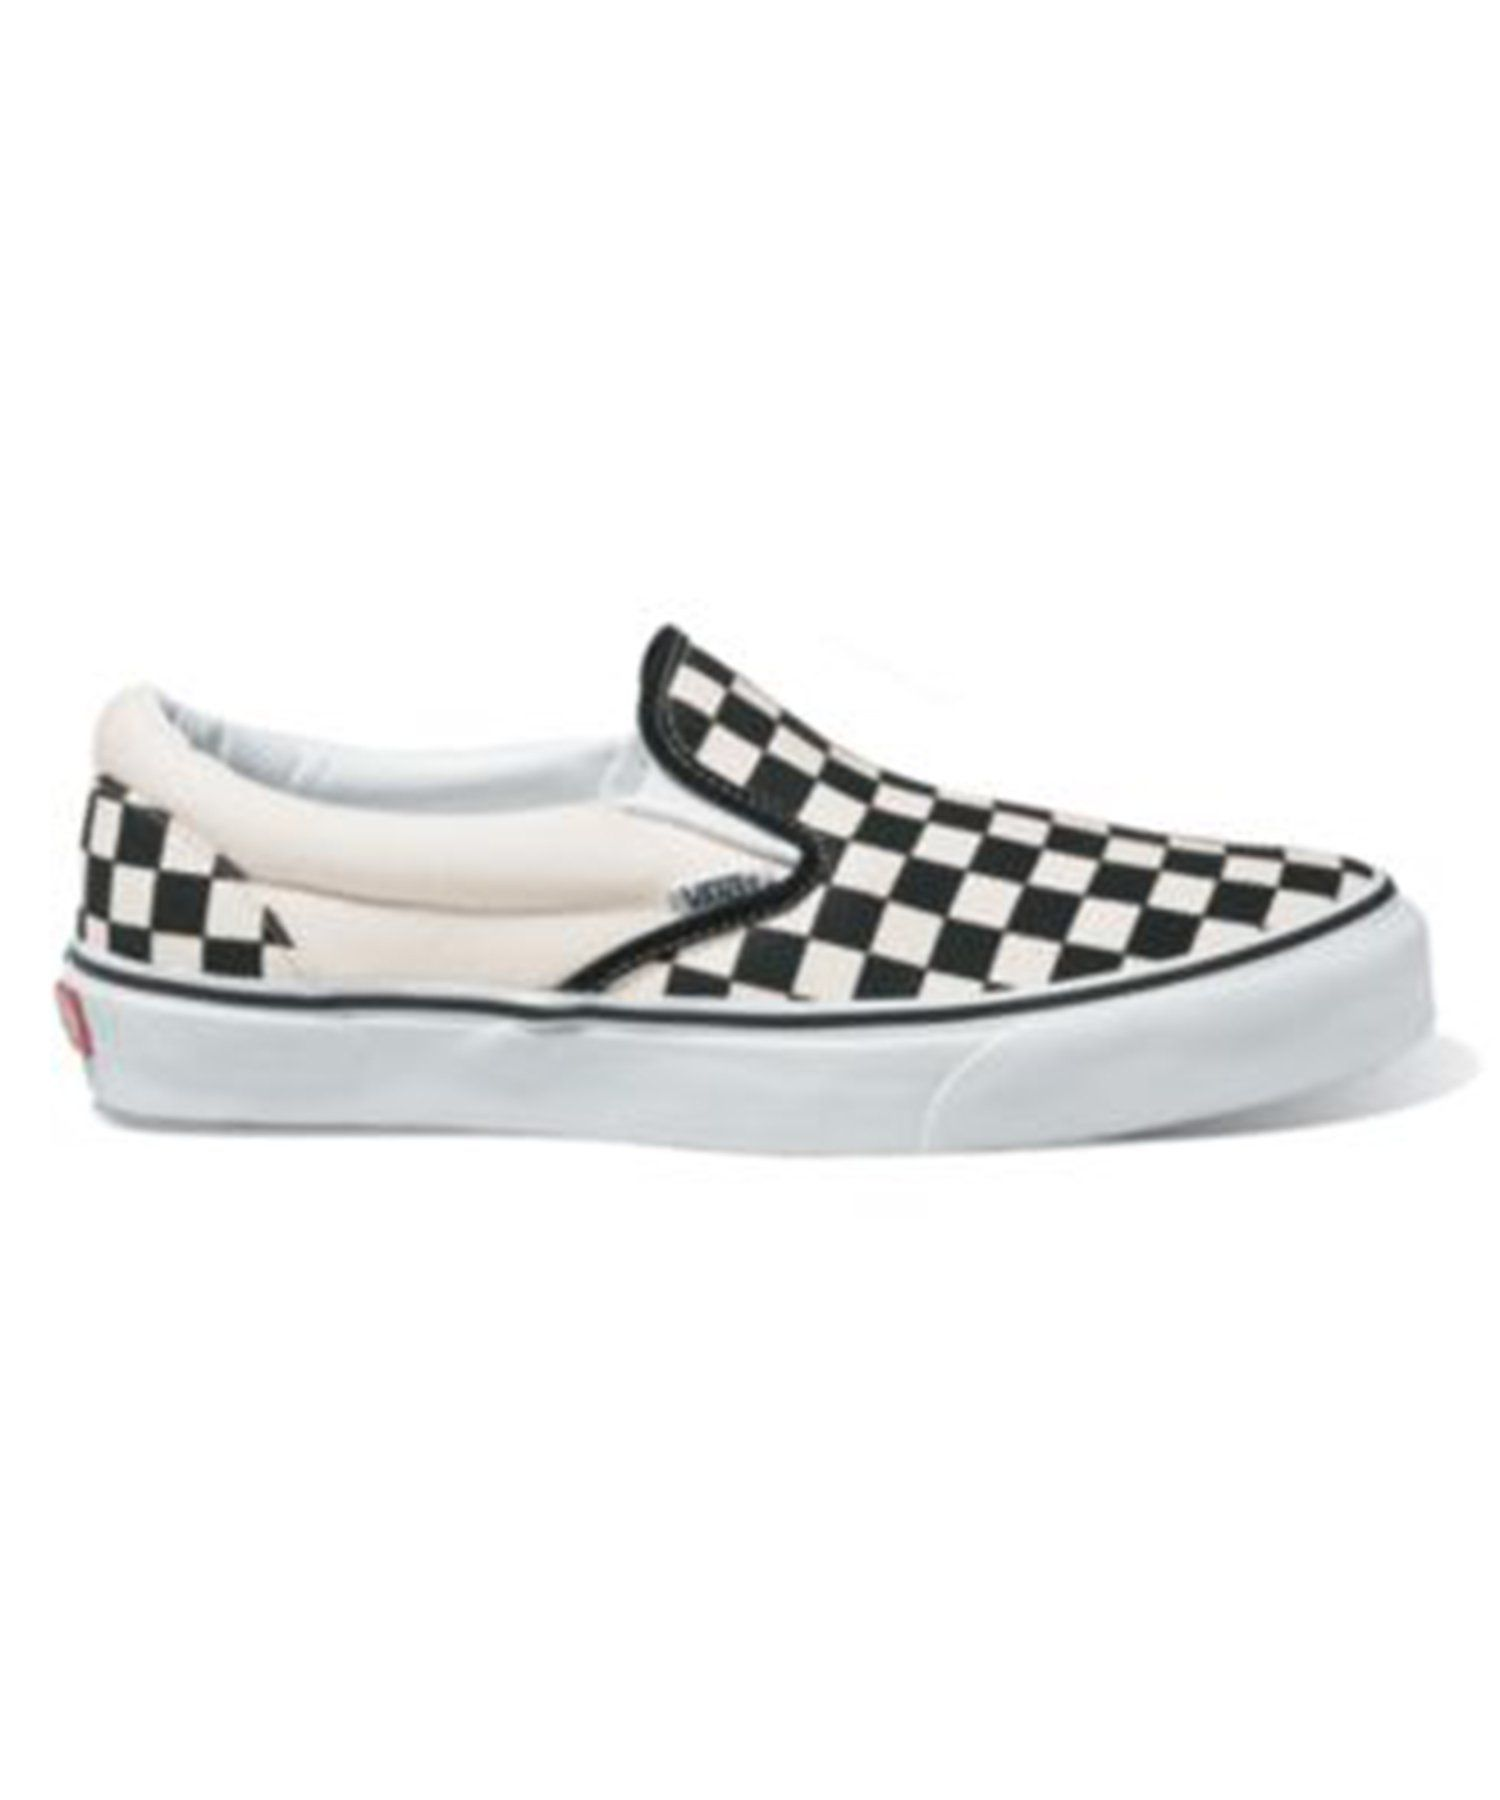 324b3450 Vans Classic Checkered Slip On in 2019 | Products | Vans, Shoes, Slip on